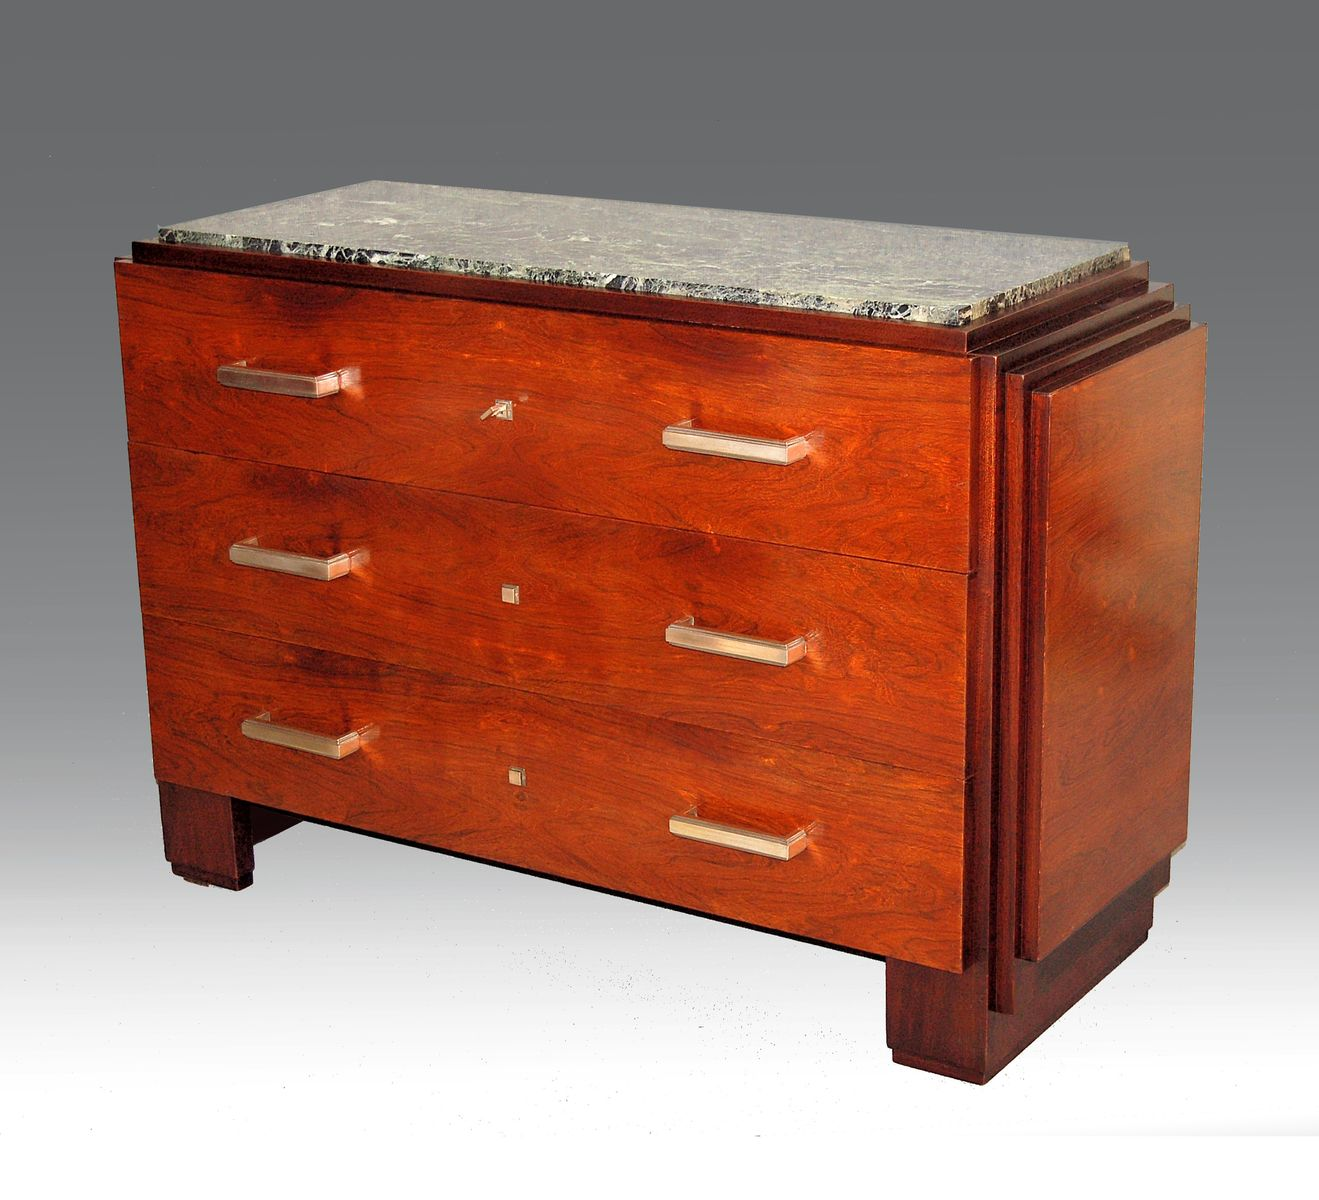 Art deco commode in rosewood and mahogany from mercier for Commode miroir art deco